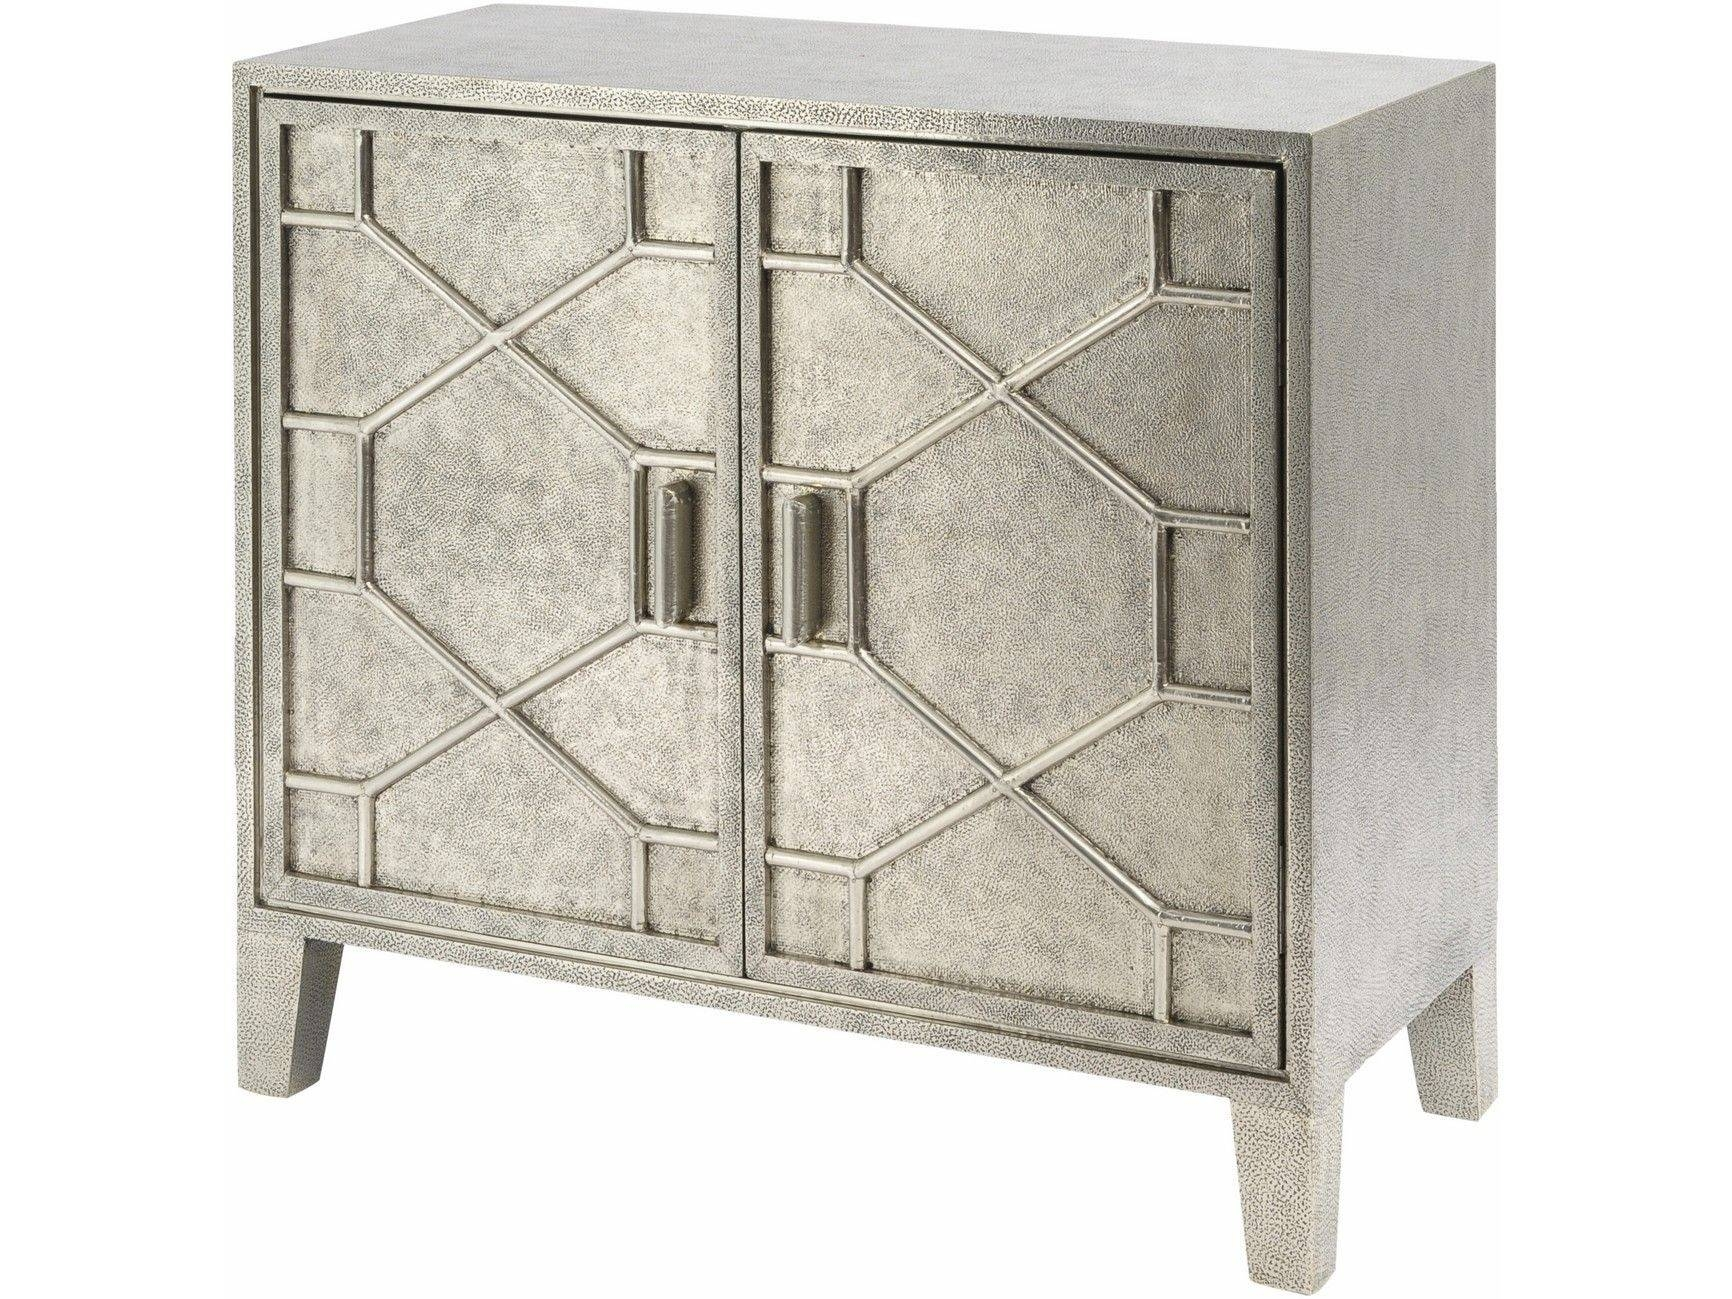 Astor Hand Embossed Metal 2 Door Cabinet | Metal Embossed Sideboards Inside Metal Sideboards Furniture (#2 of 20)